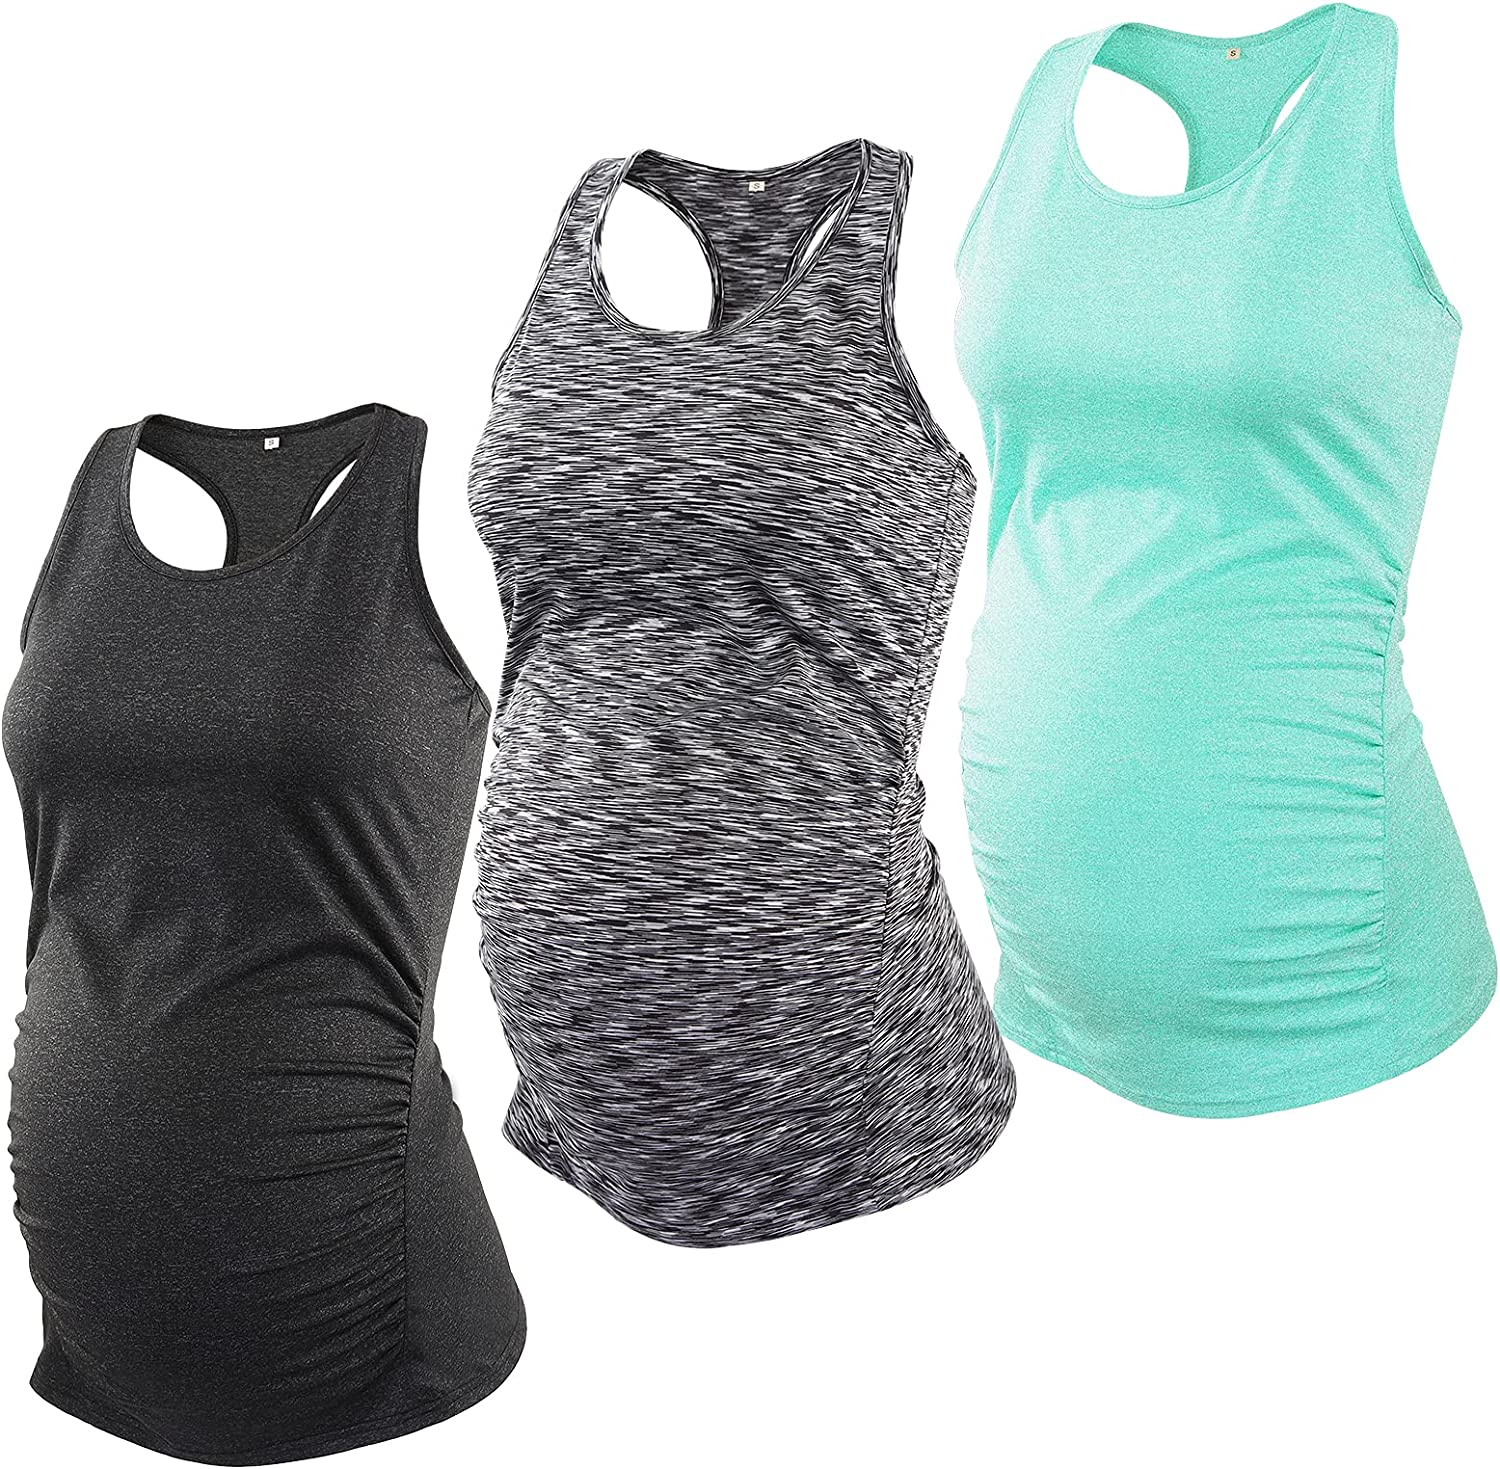 Glampunch 3PCS Maternity Yoga Tops Sleeveless Racerback Workout Athletic Maternity Tank Tops Pregnancy T-Shirts at  Women's Clothing store